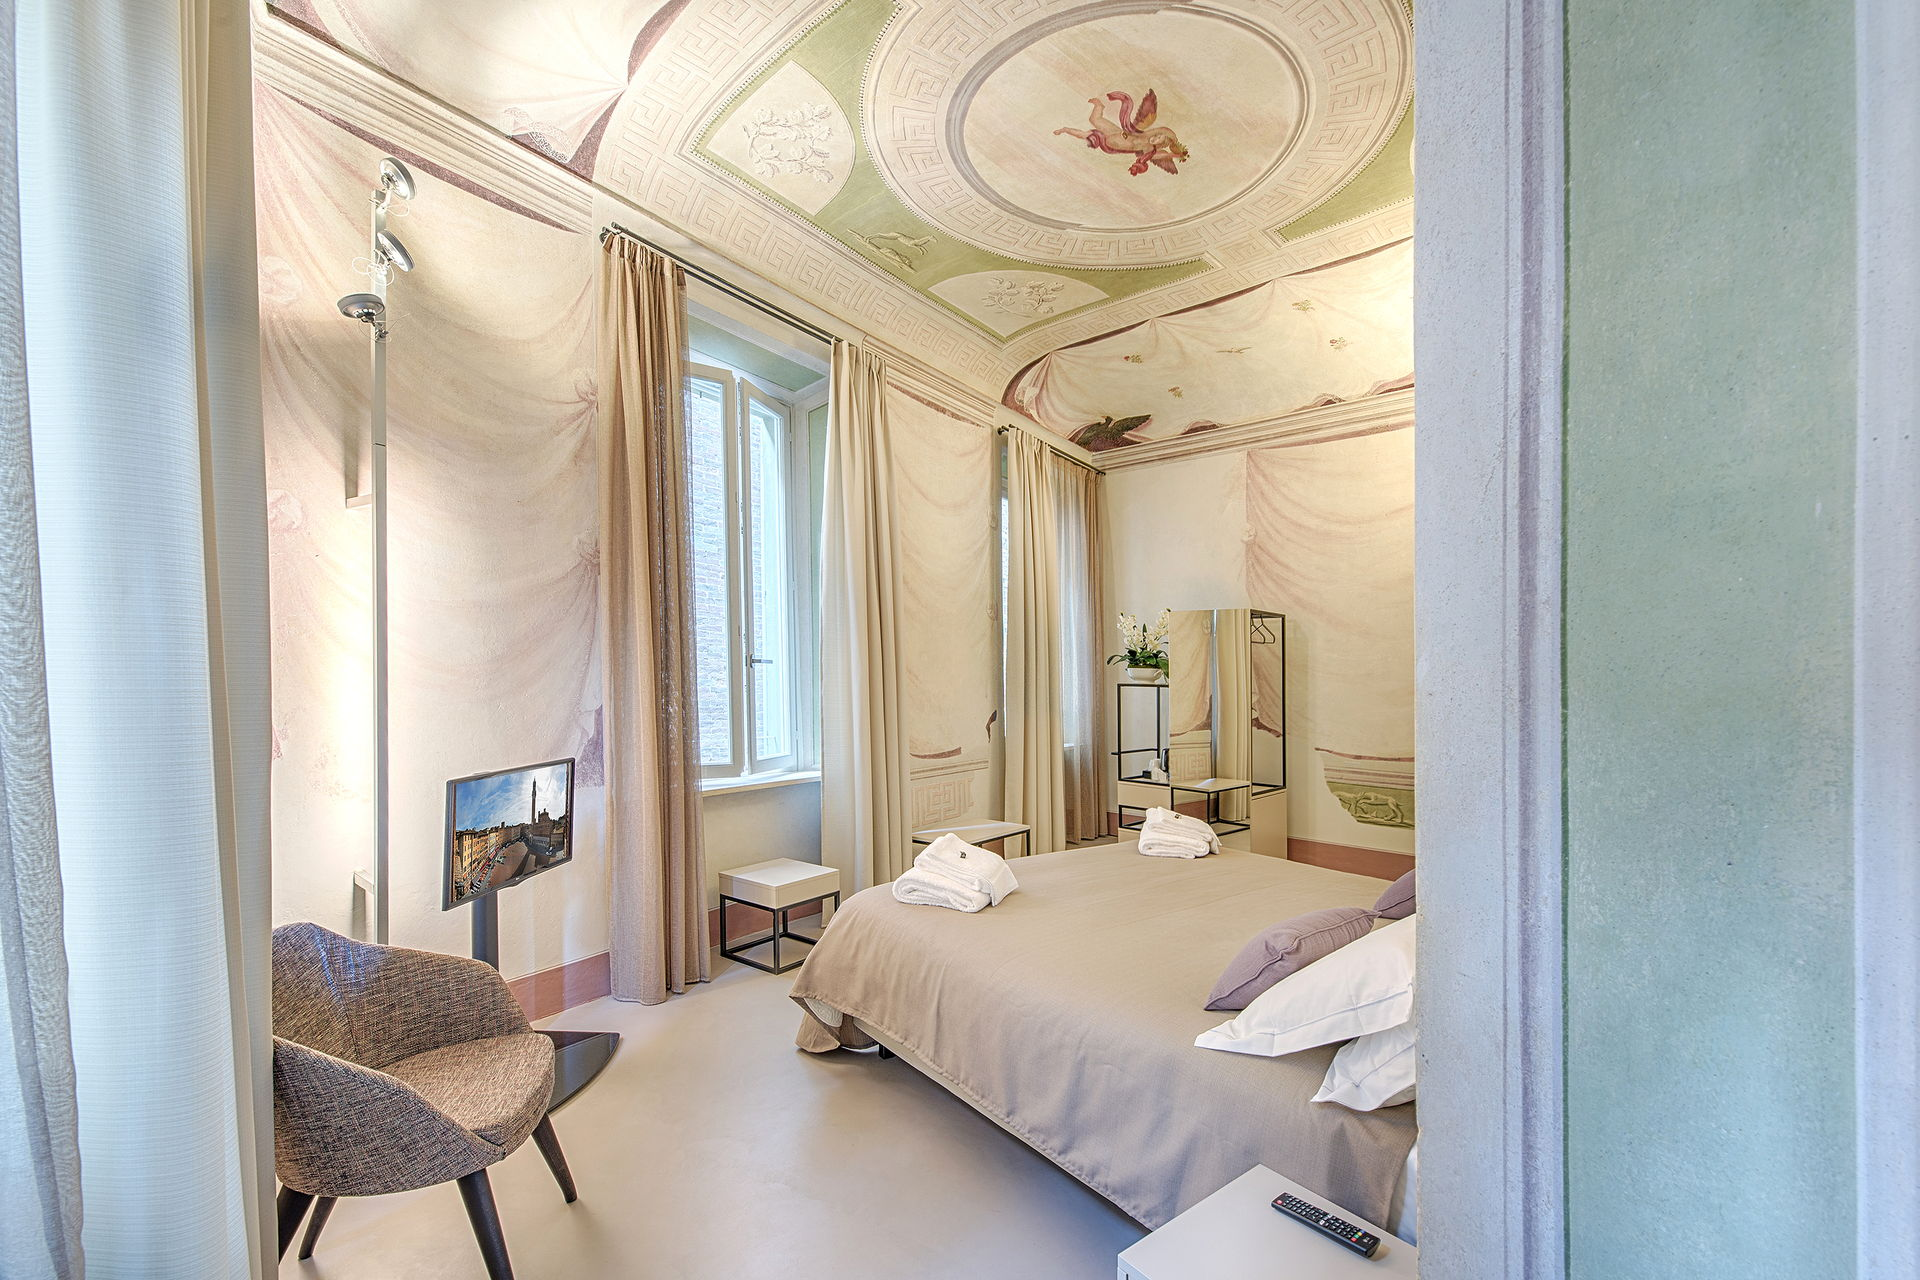 Residenza d'epoca Le Aquile - Bed and Breakfast luxury nel centro di Siena 3